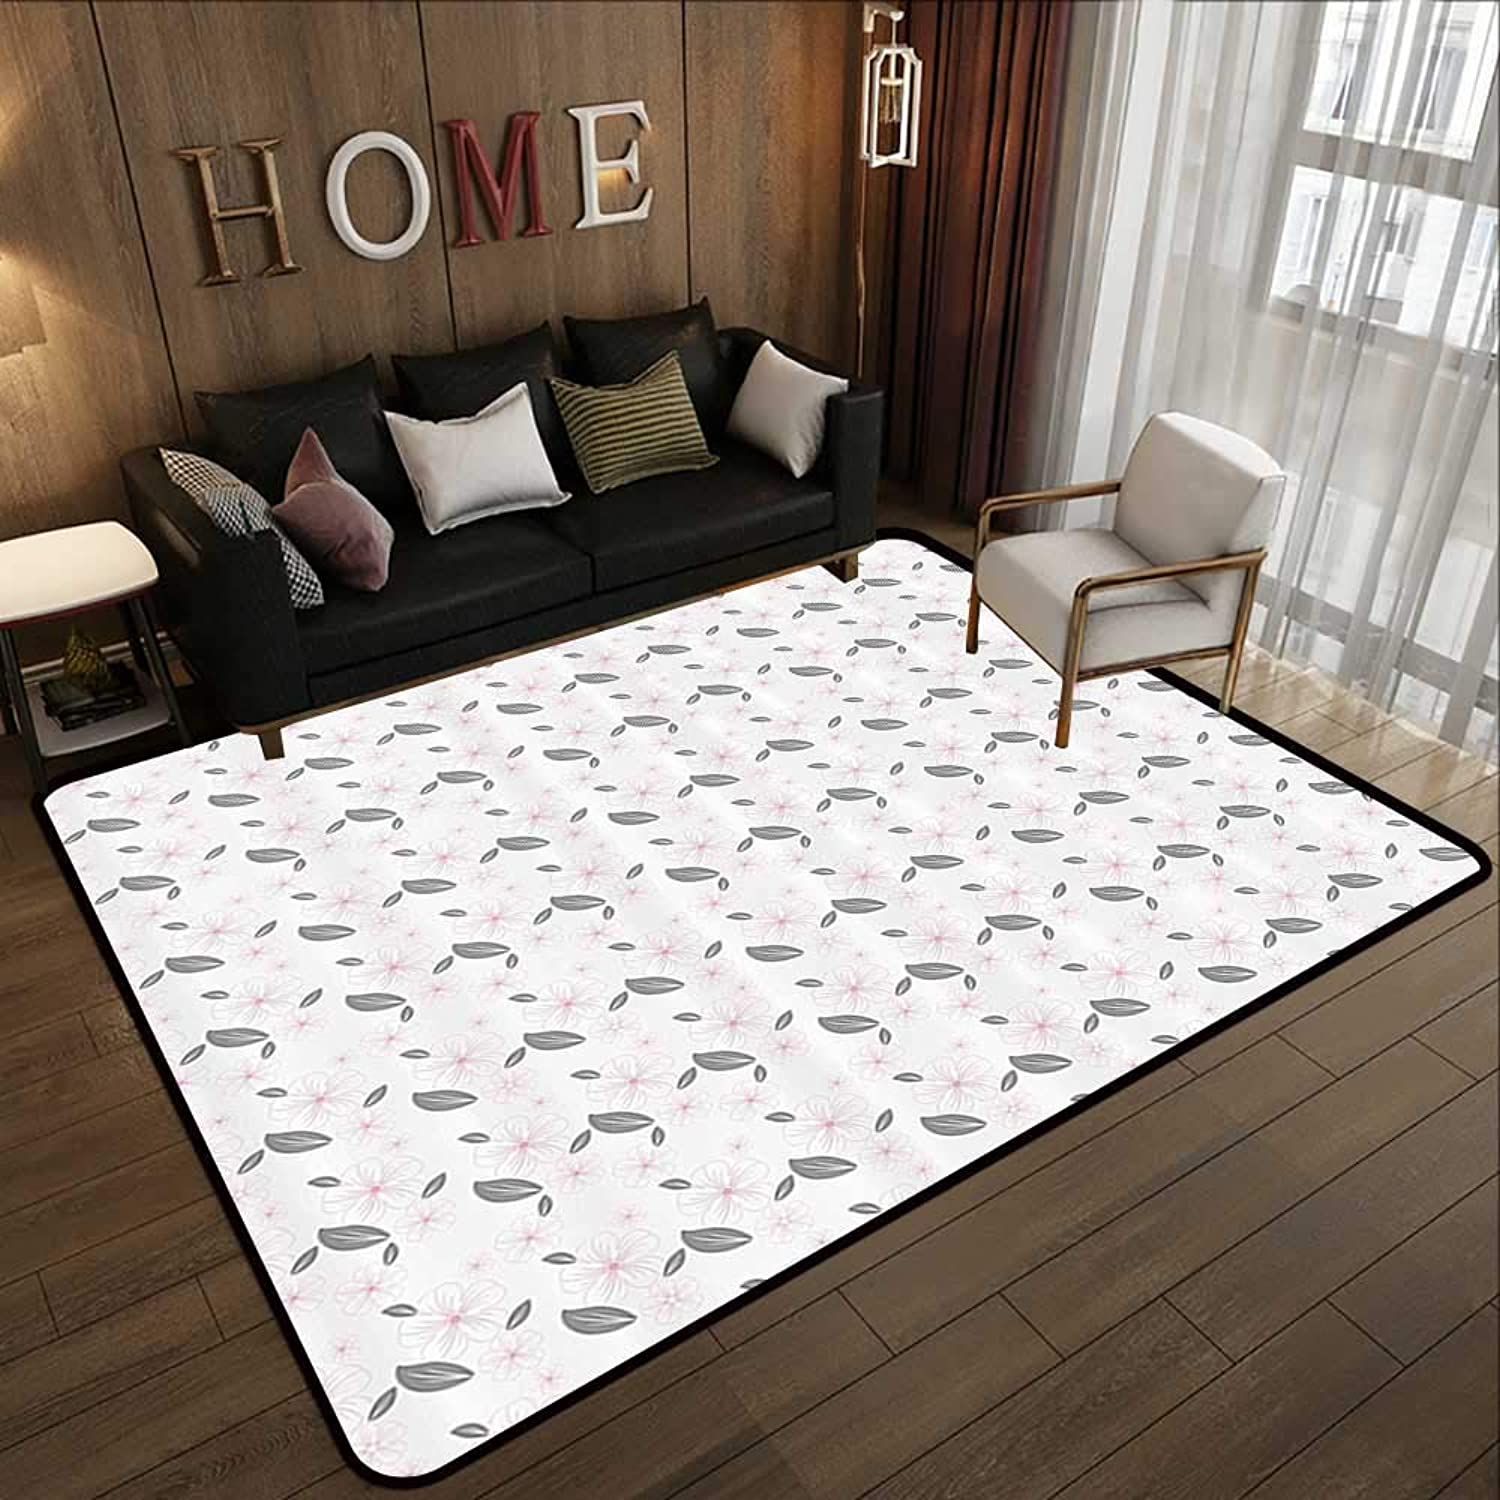 Kids Rugs,Floral,Big Spring Flowers and Leaves Nature Inspired Garden Pattern Artwork,Light Grey Grey Light Pink 71 x 81.5  Slip-Resistant Washable Entrance Doormat